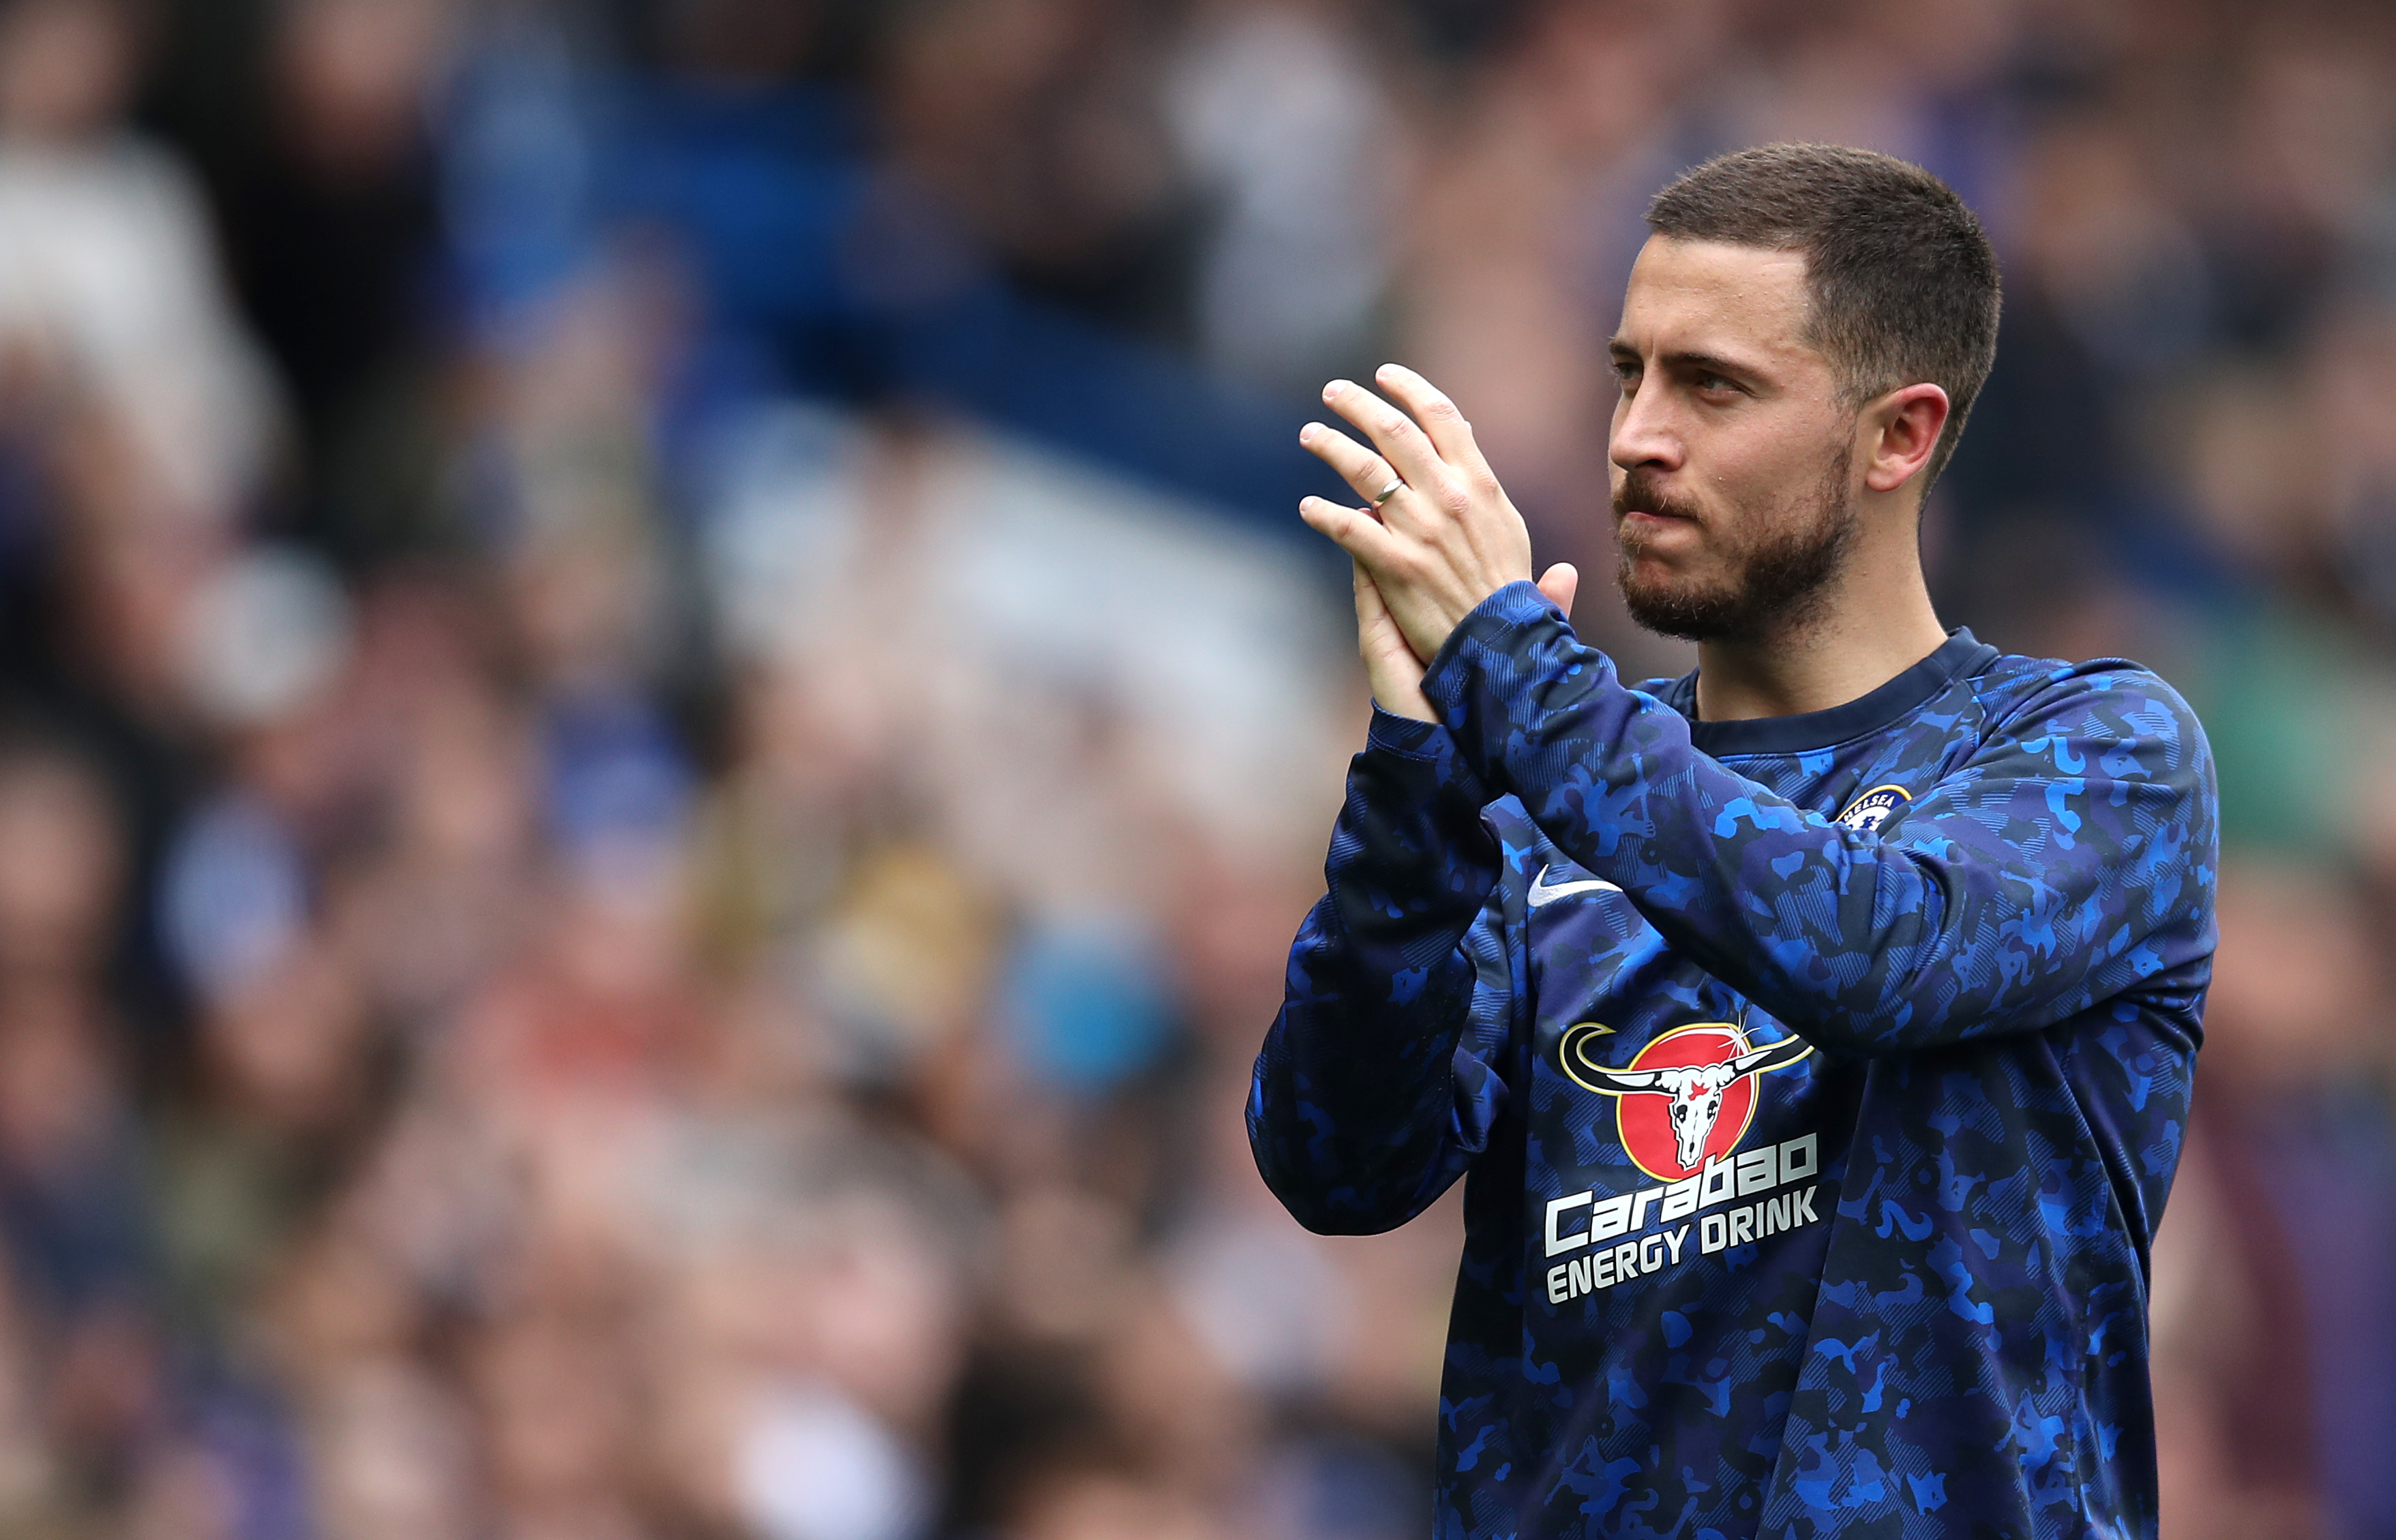 What Real Madrid have agreed to pay Chelsea's Eden Hazard per week